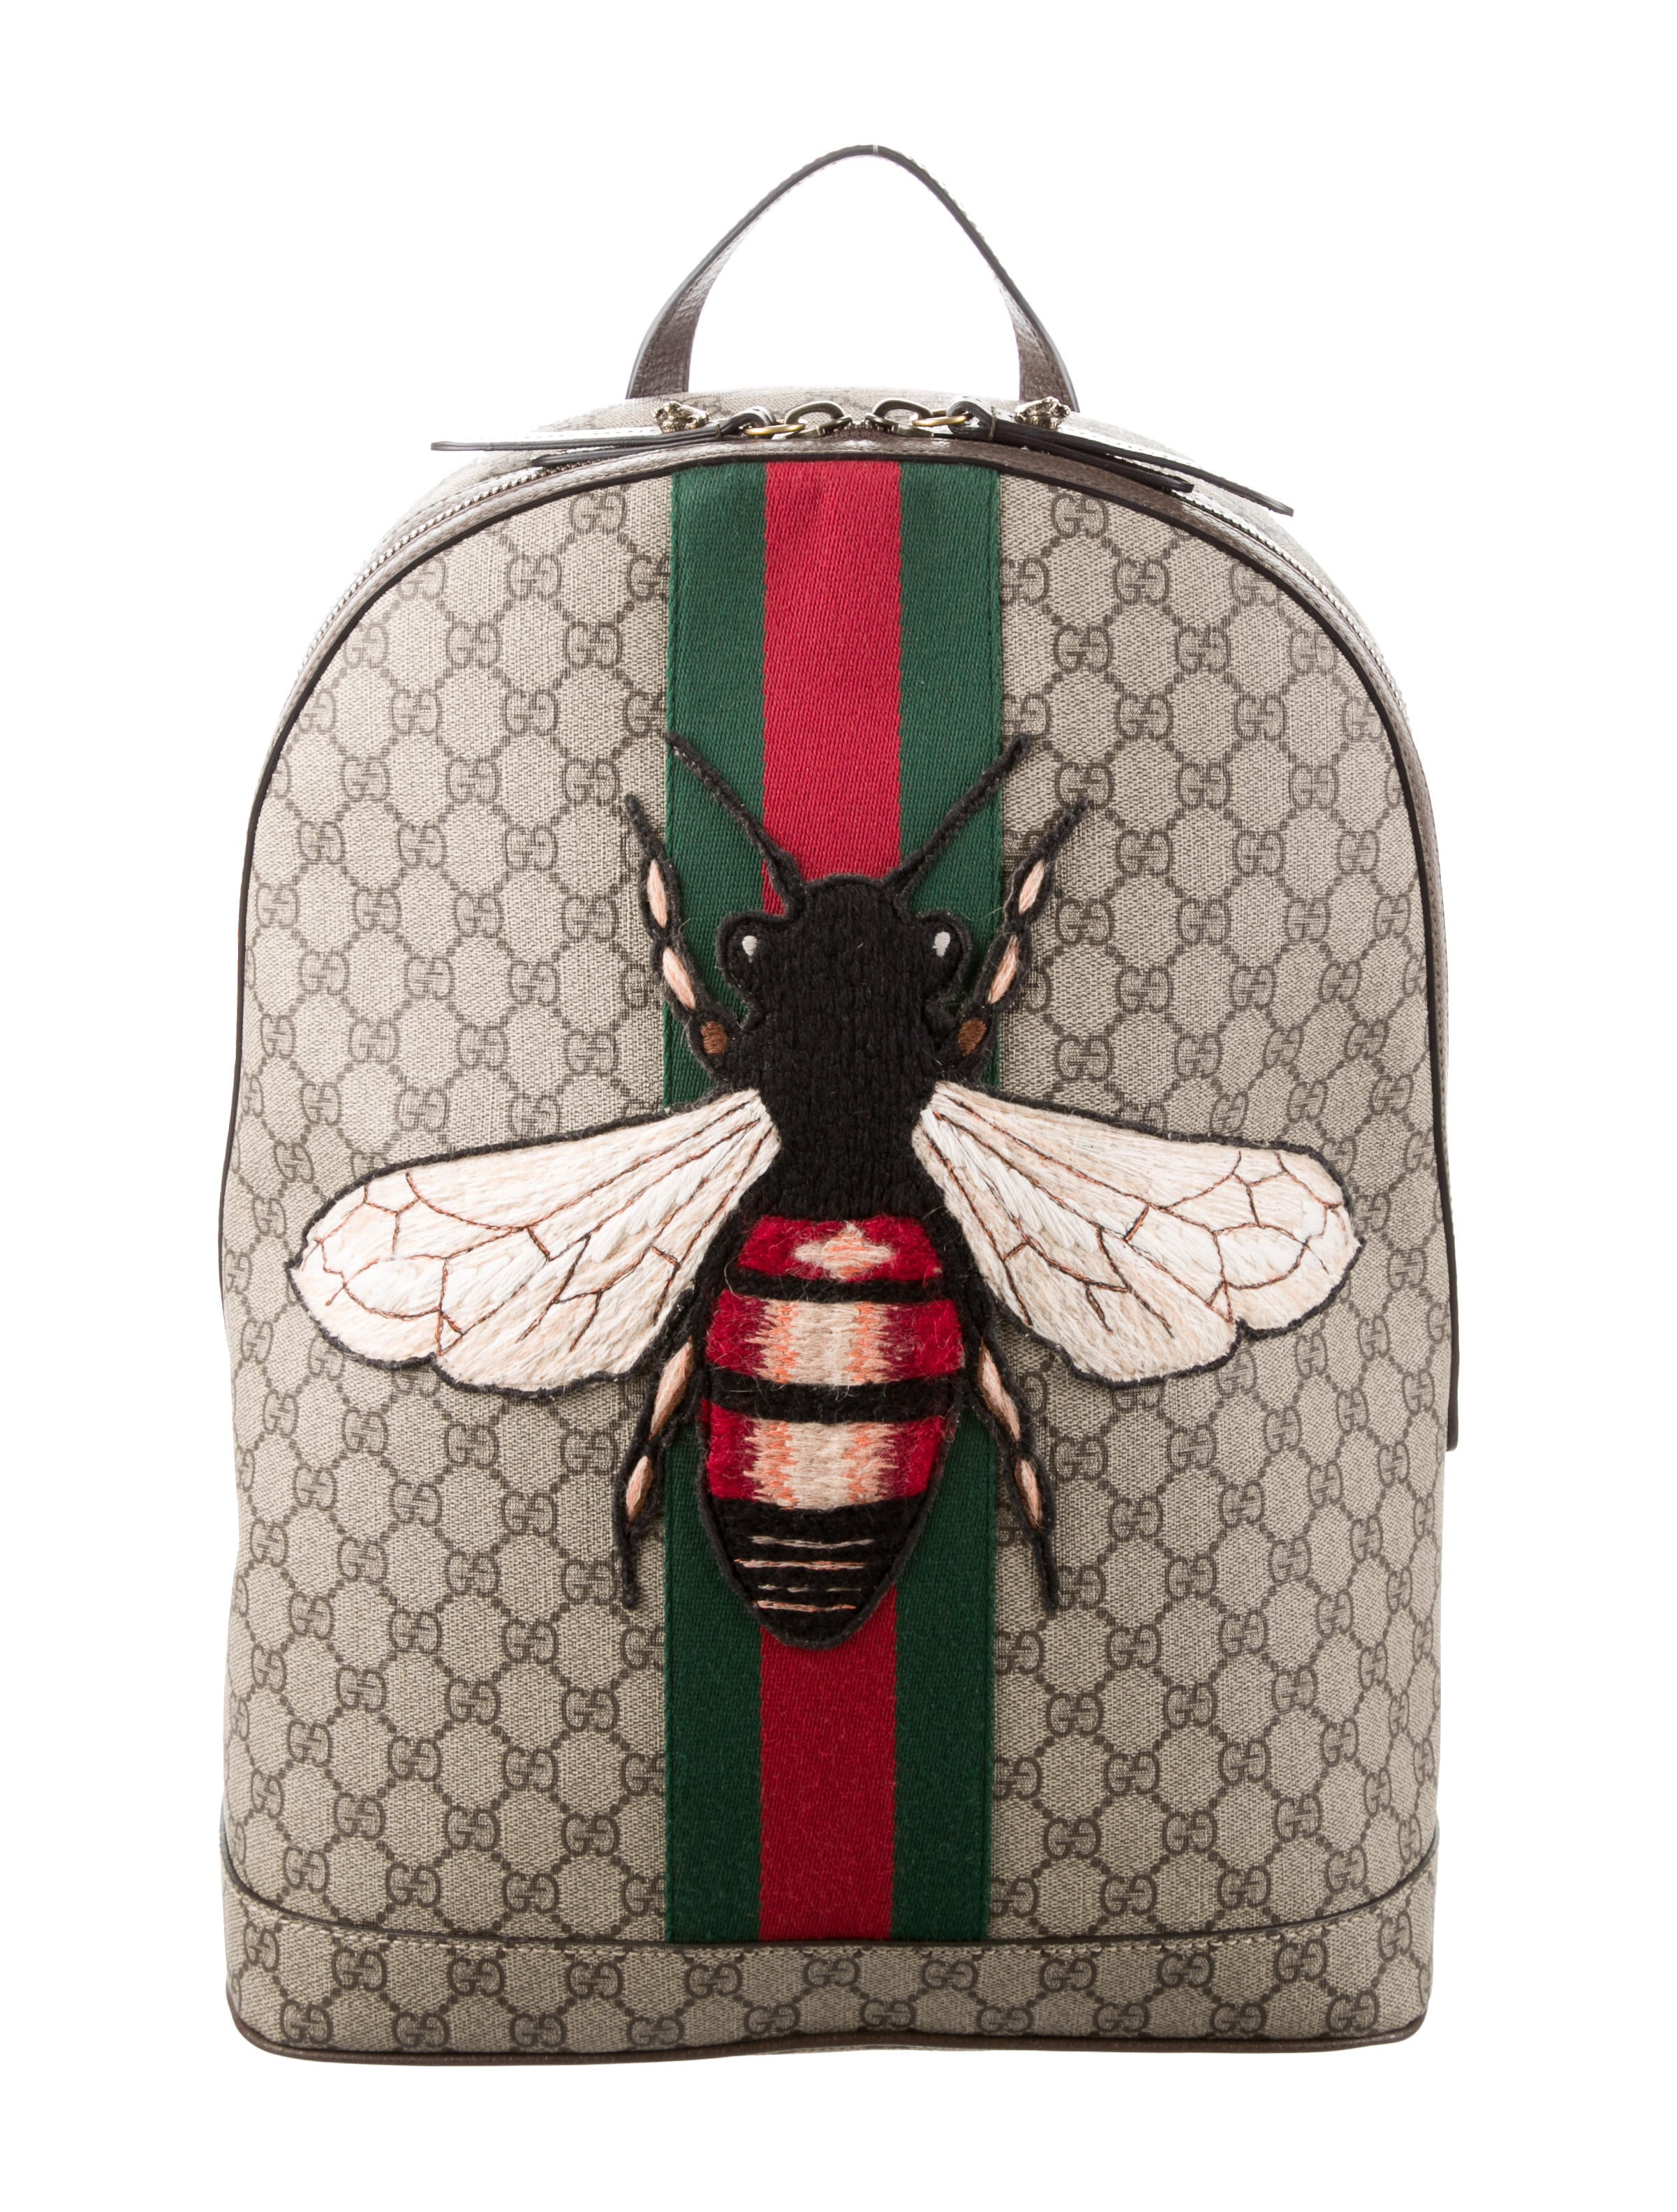 70f4f78d743 Gucci 2016 Web Animalier Bee Backpack - Bags - GUC138401